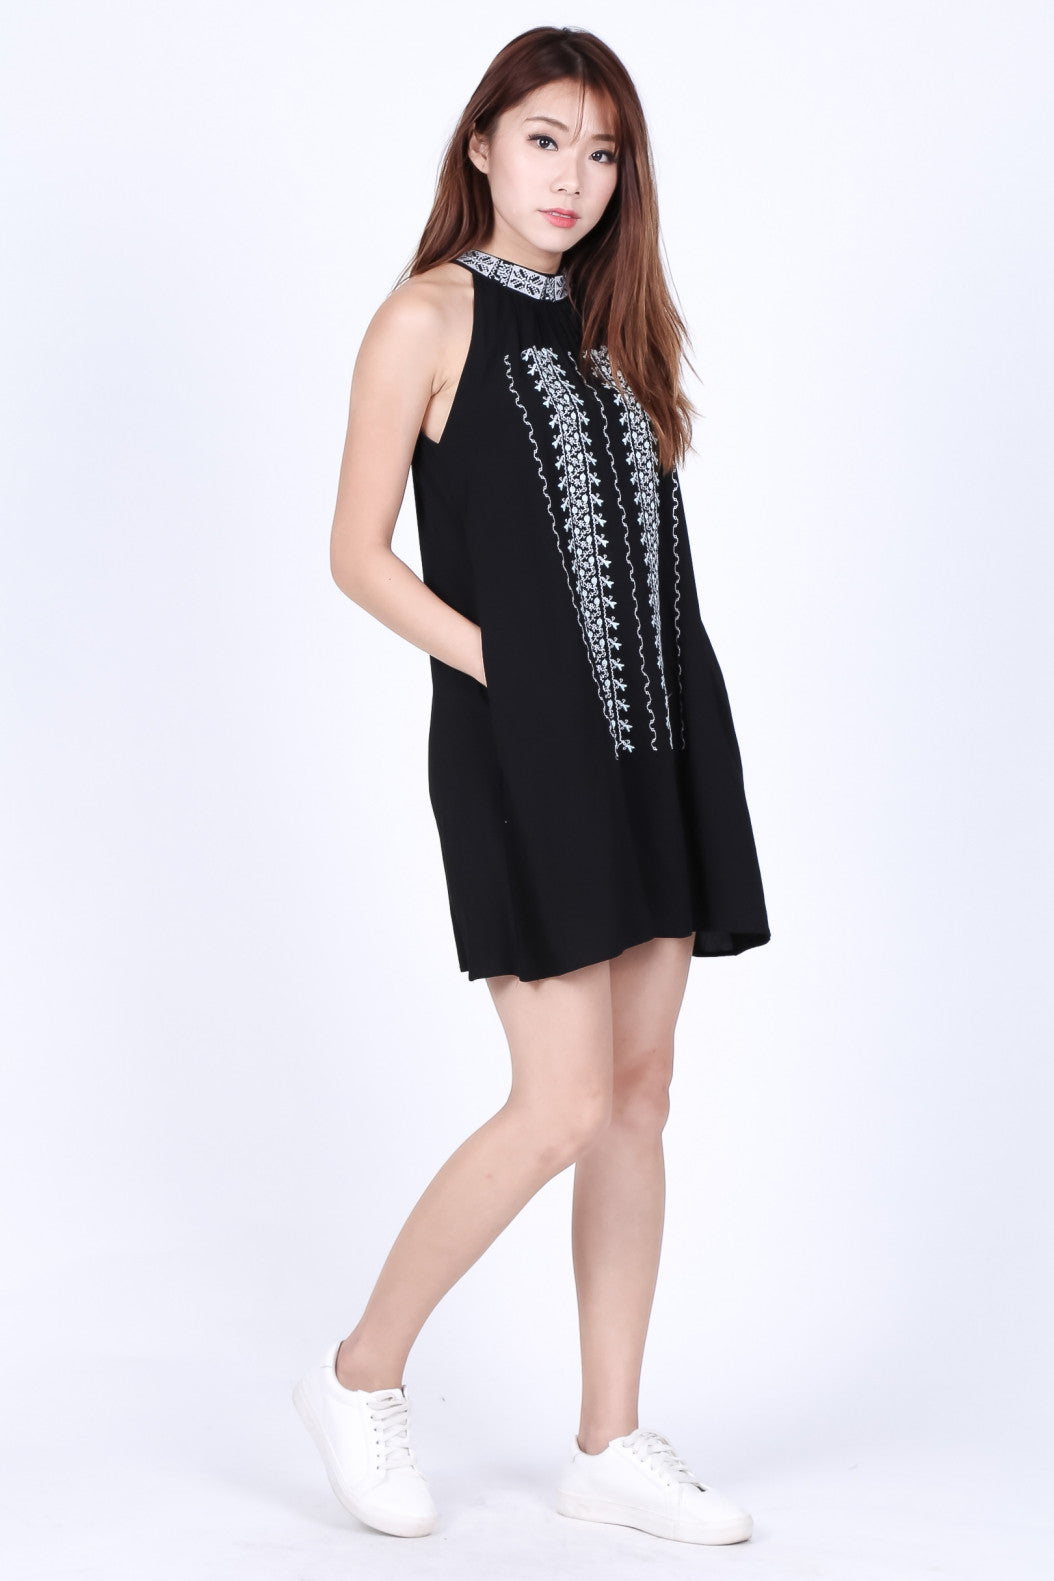 *TOPAZ* FAYETTE EMBROIDERY DRESS IN BLACK - TOPAZETTE